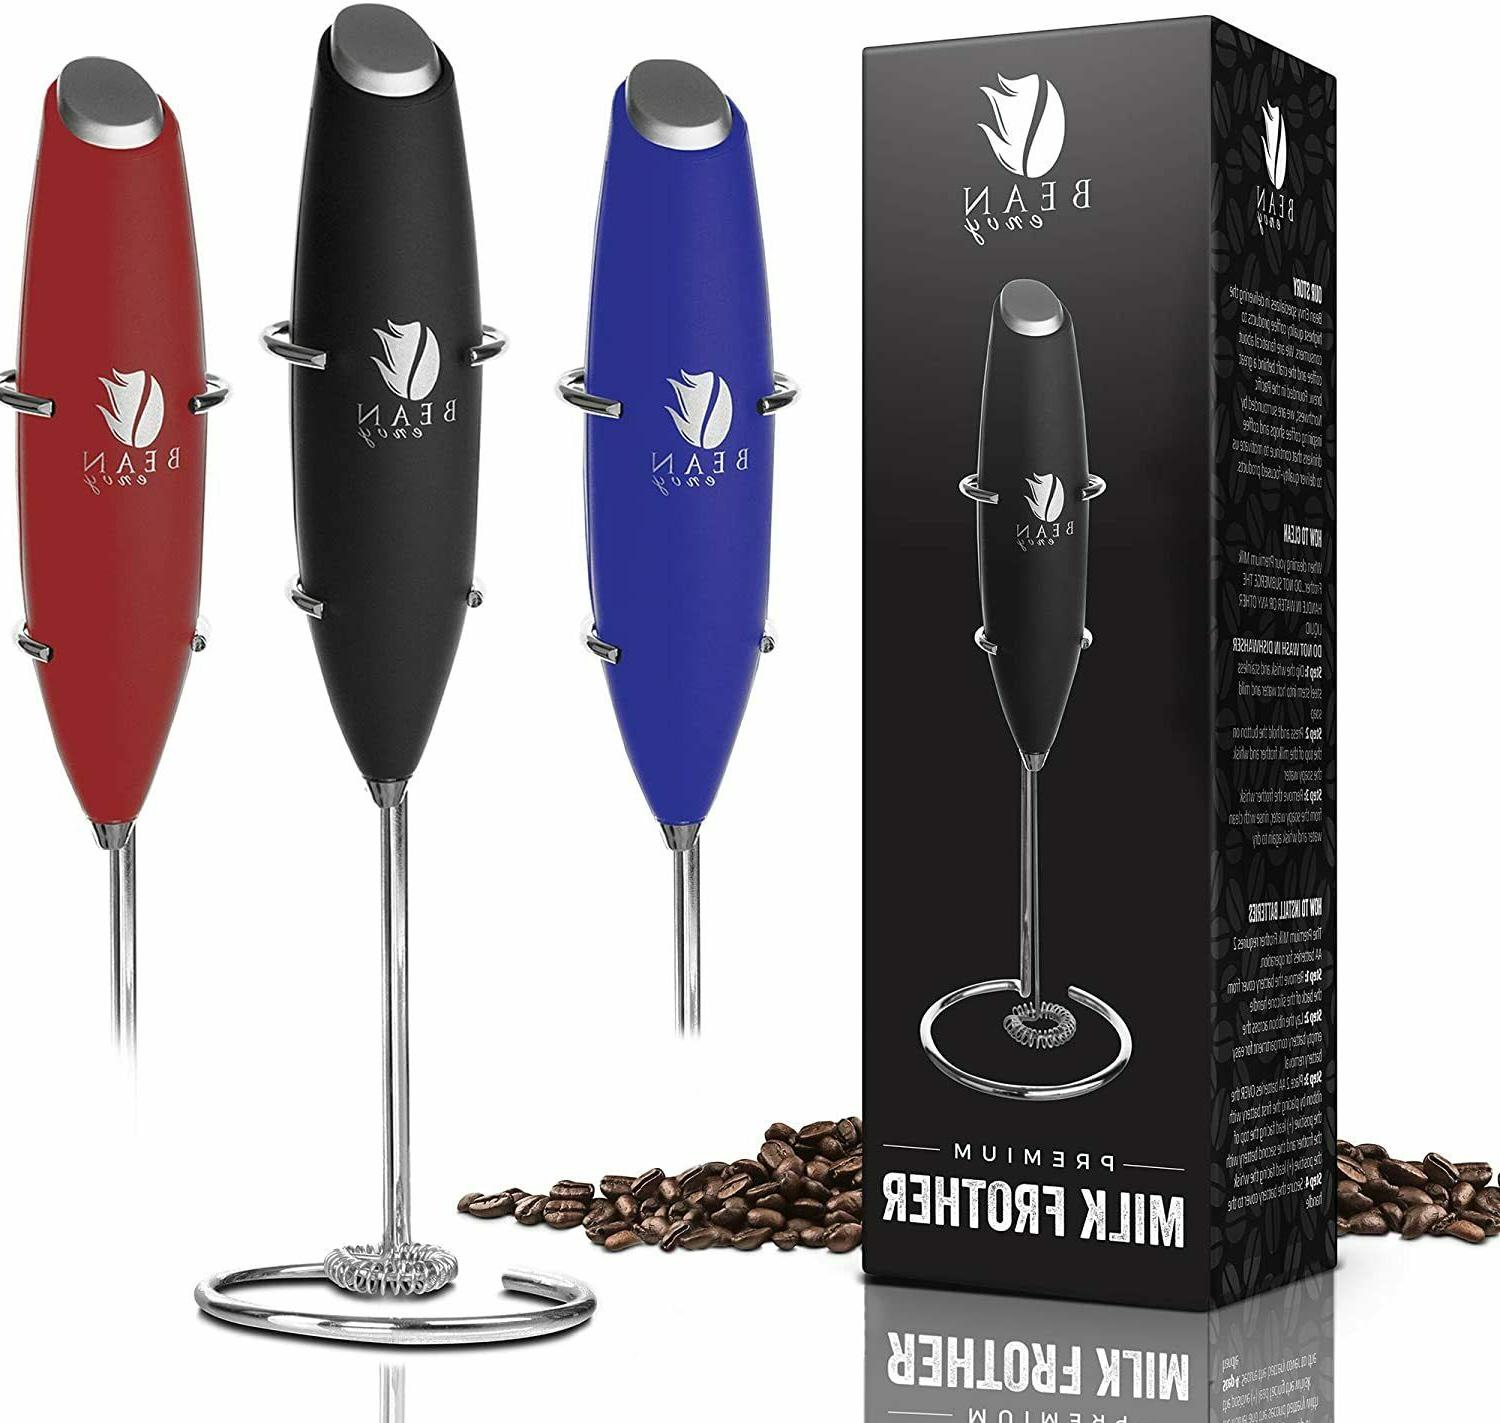 bean envy milk frother handheld perfect